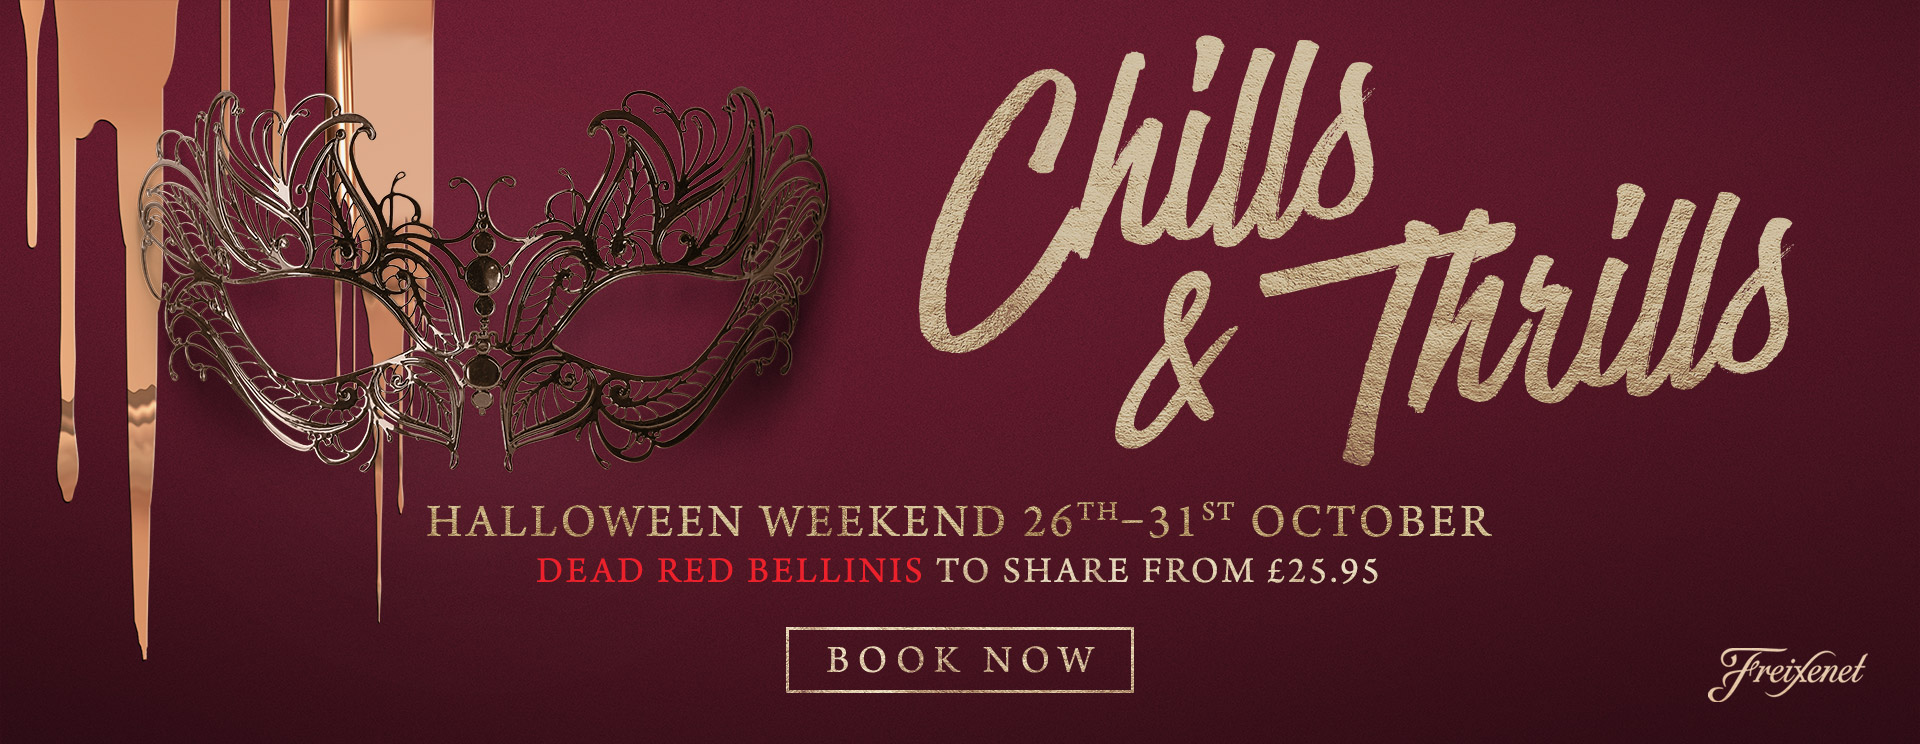 Chills & Thrills this Halloween at The Dukes Head